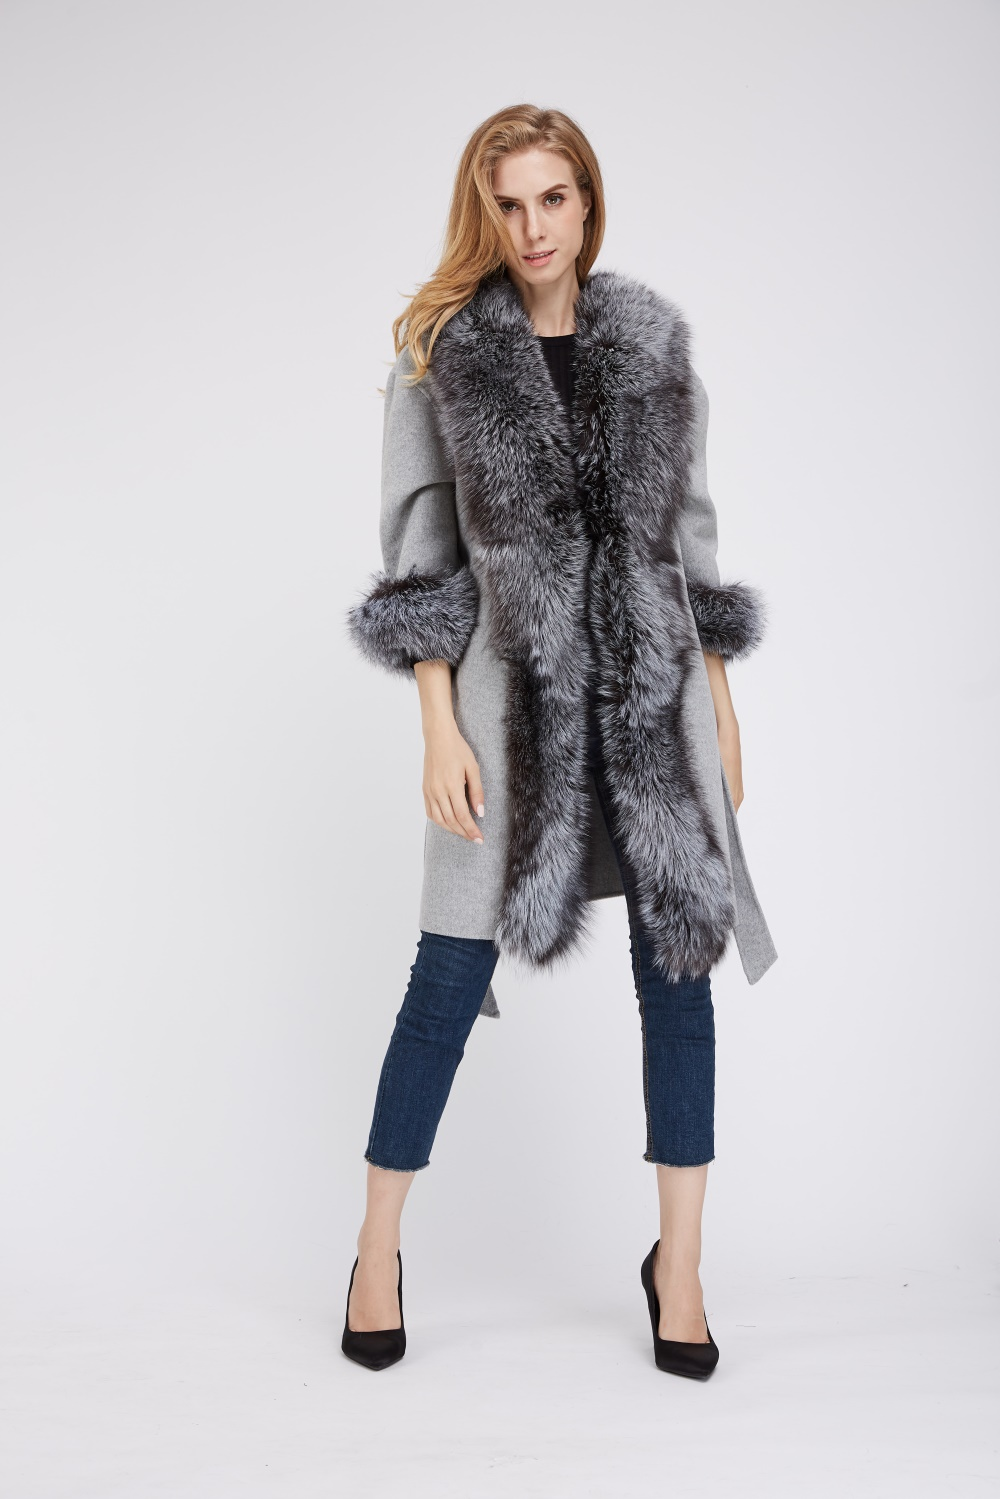 fashion styles on feet at release date: Long wool coat with silver fox fur collar cuffs with belt 1807002 ...